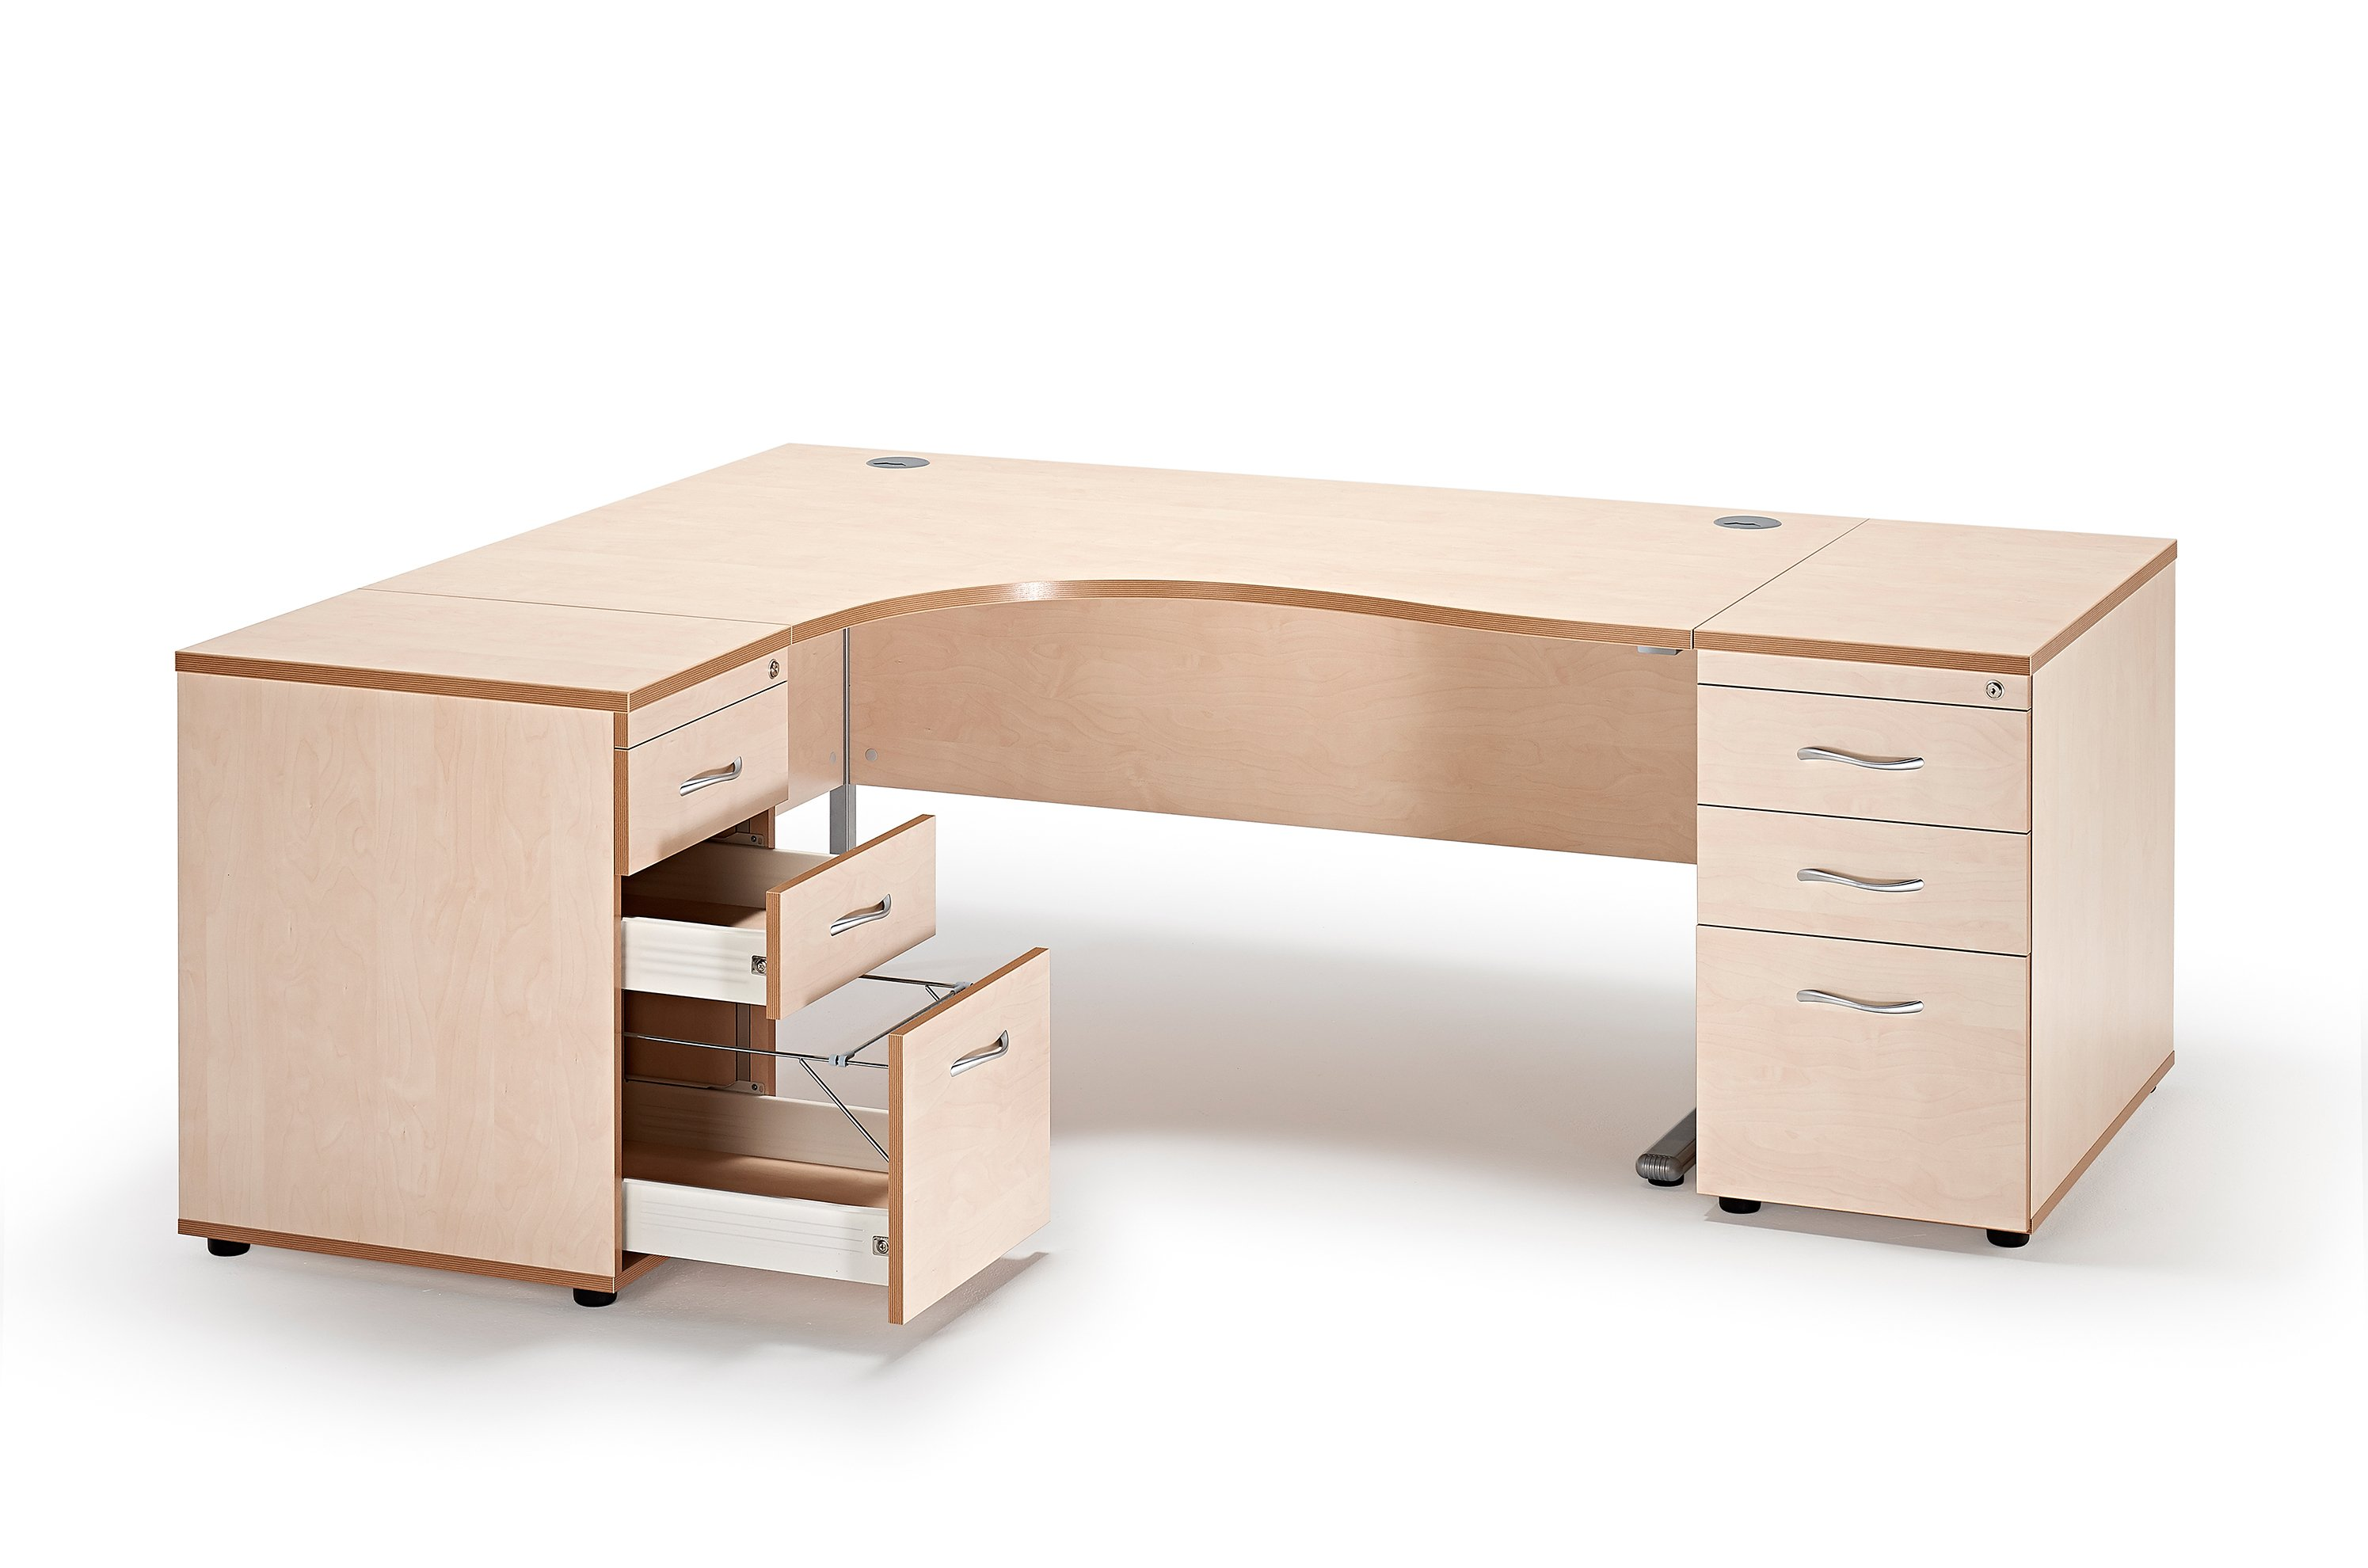 next day curved maple cantilever office desk and 2 desk high pedestals